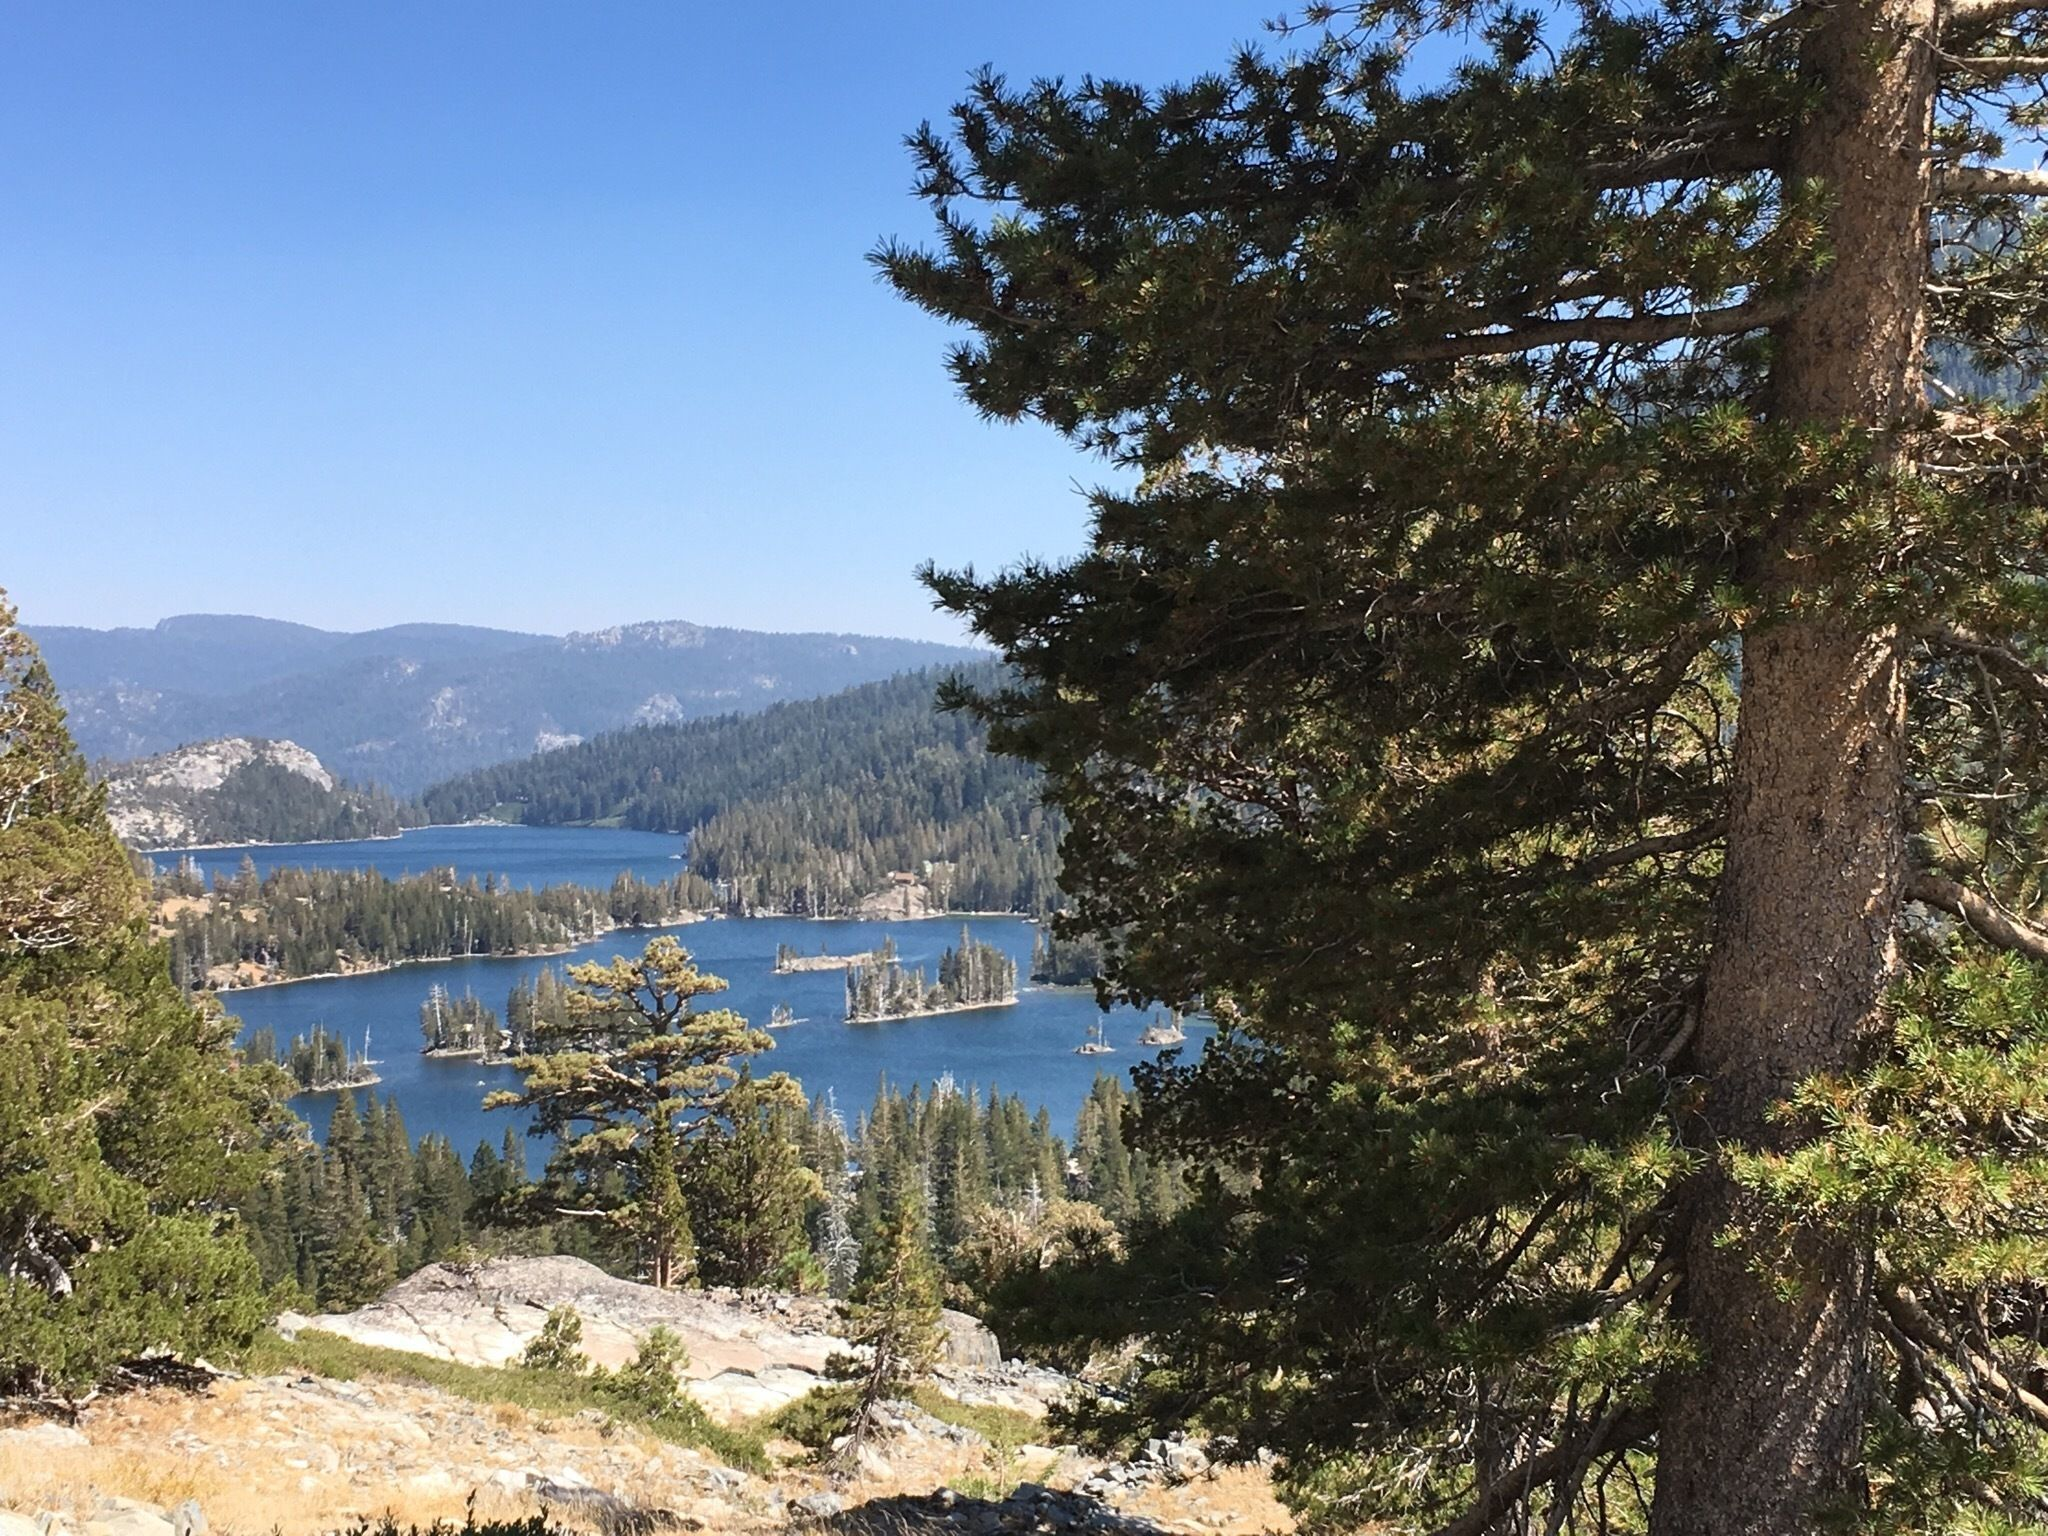 Lake of the Woods via Pacific Crest Trail - California